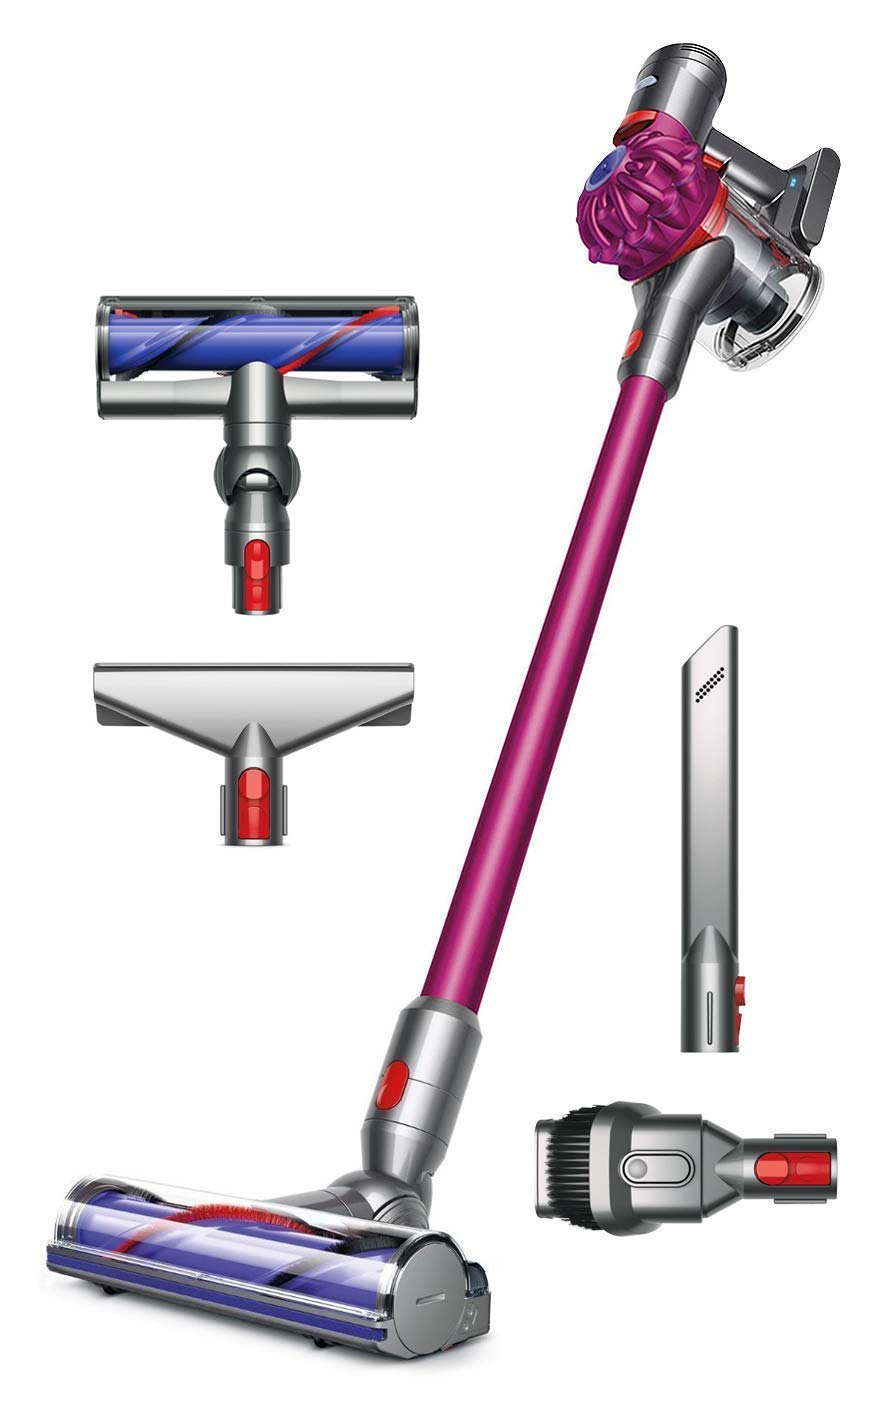 Dyson V7 Motorhead Handheld Cordless Vacuum Cleaner with Manufacturer s Warranty 1 Extra Mattress Tool Bundle